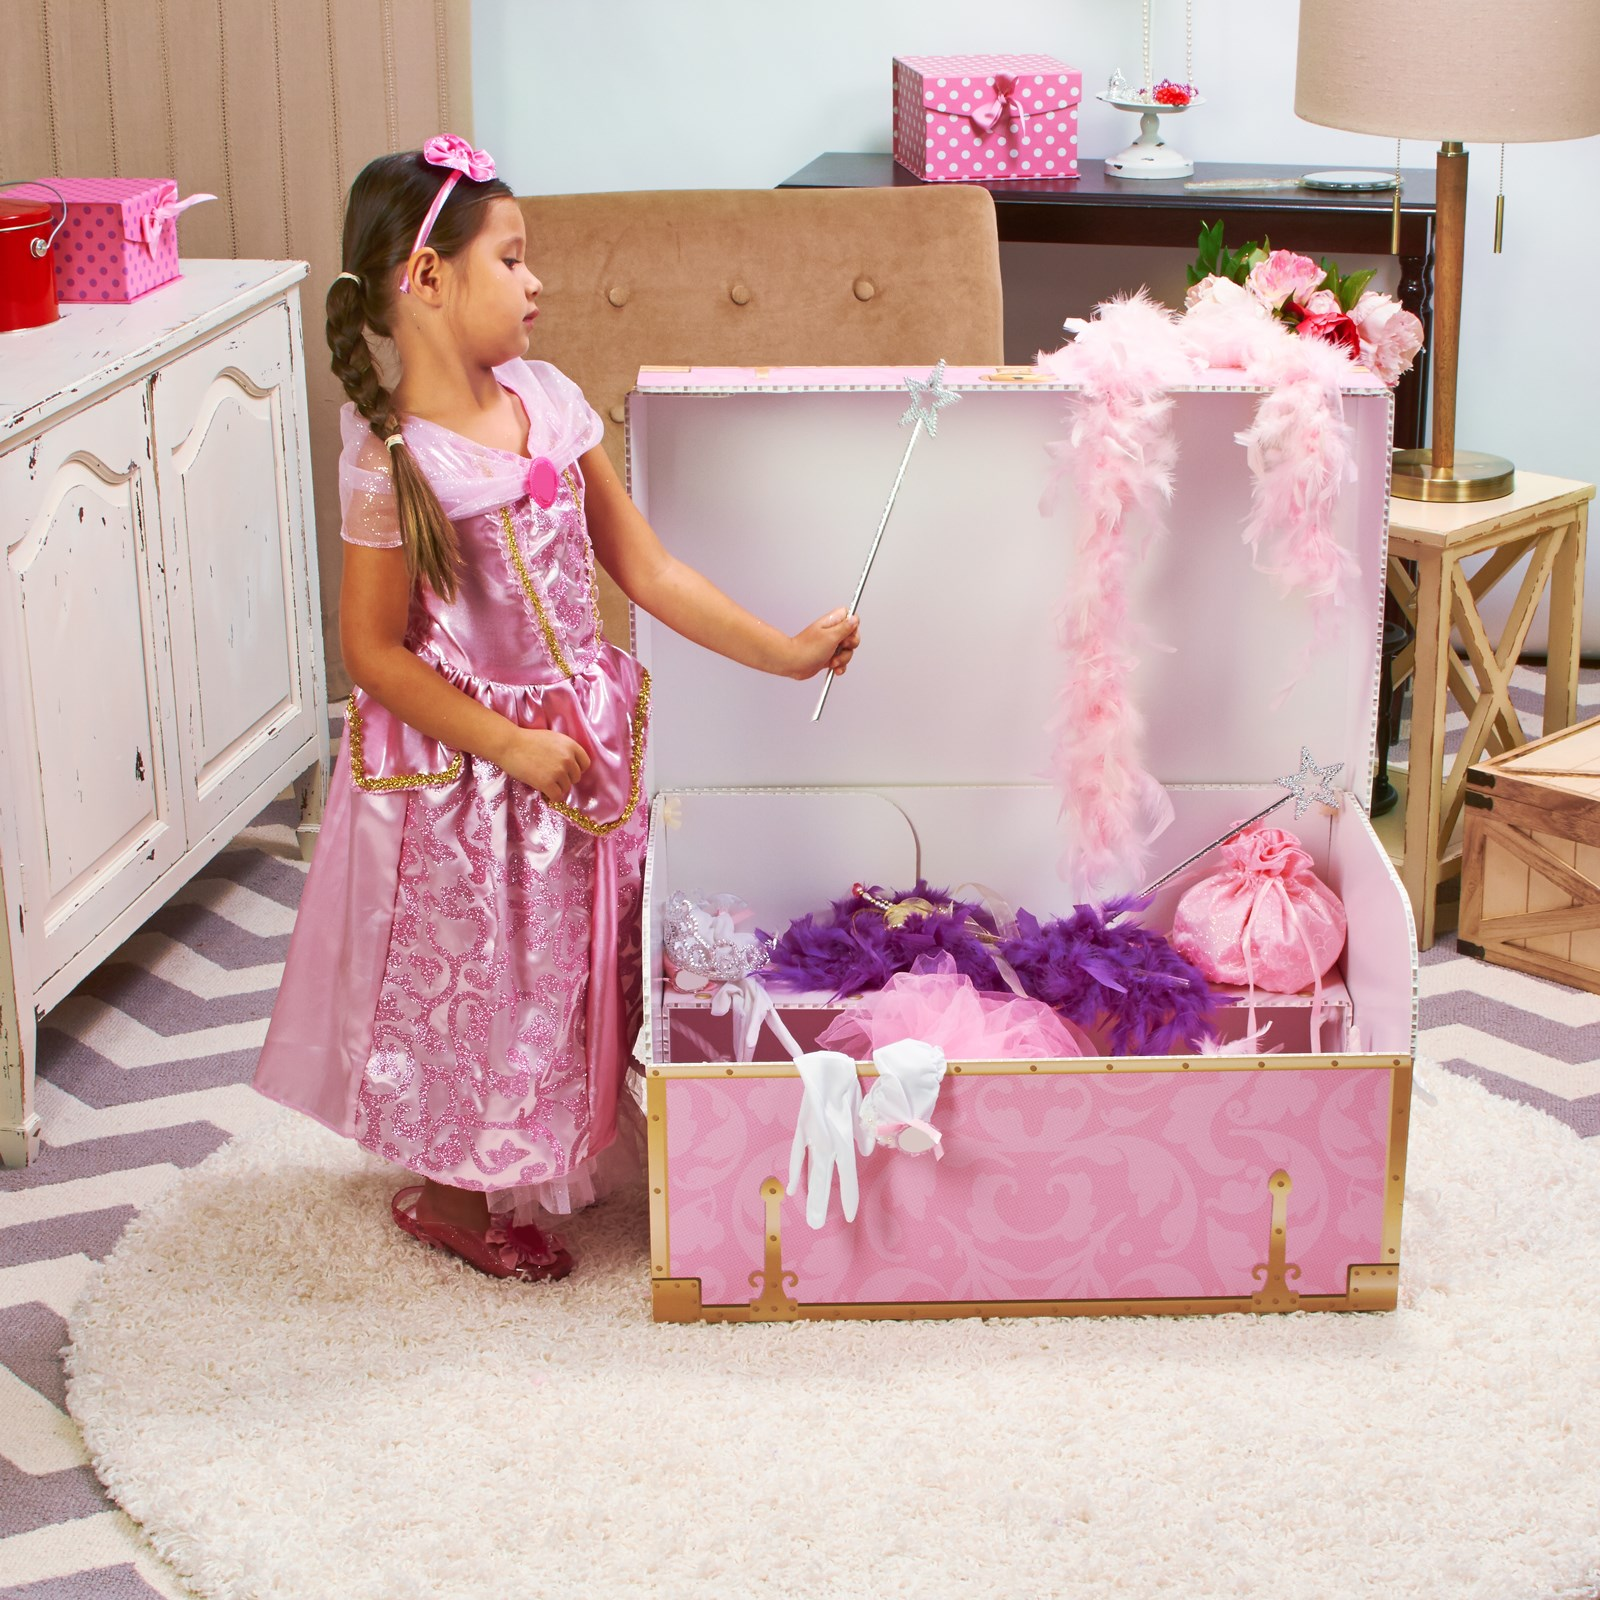 Girls Play Trunk | BirthdayExpress.com